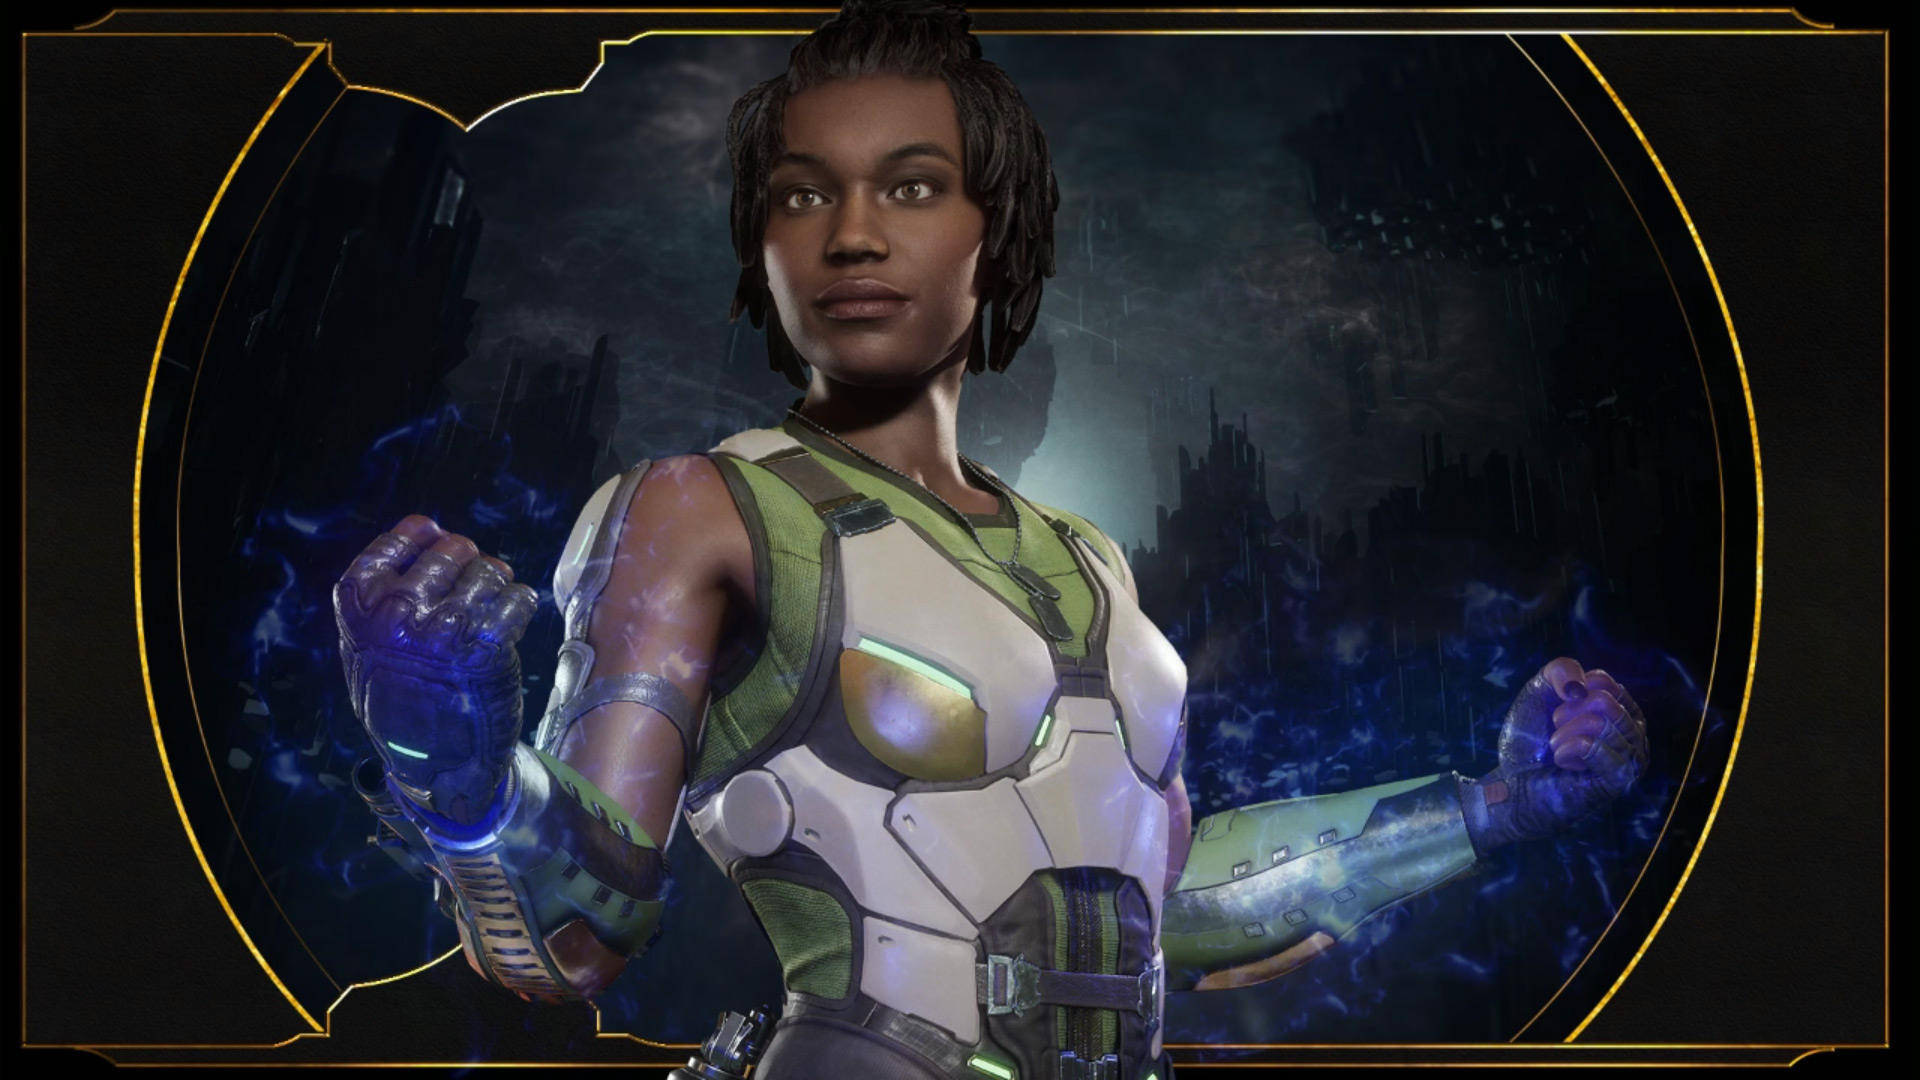 Mortal Kombat 11 wallpaper - Jacqui Briggs